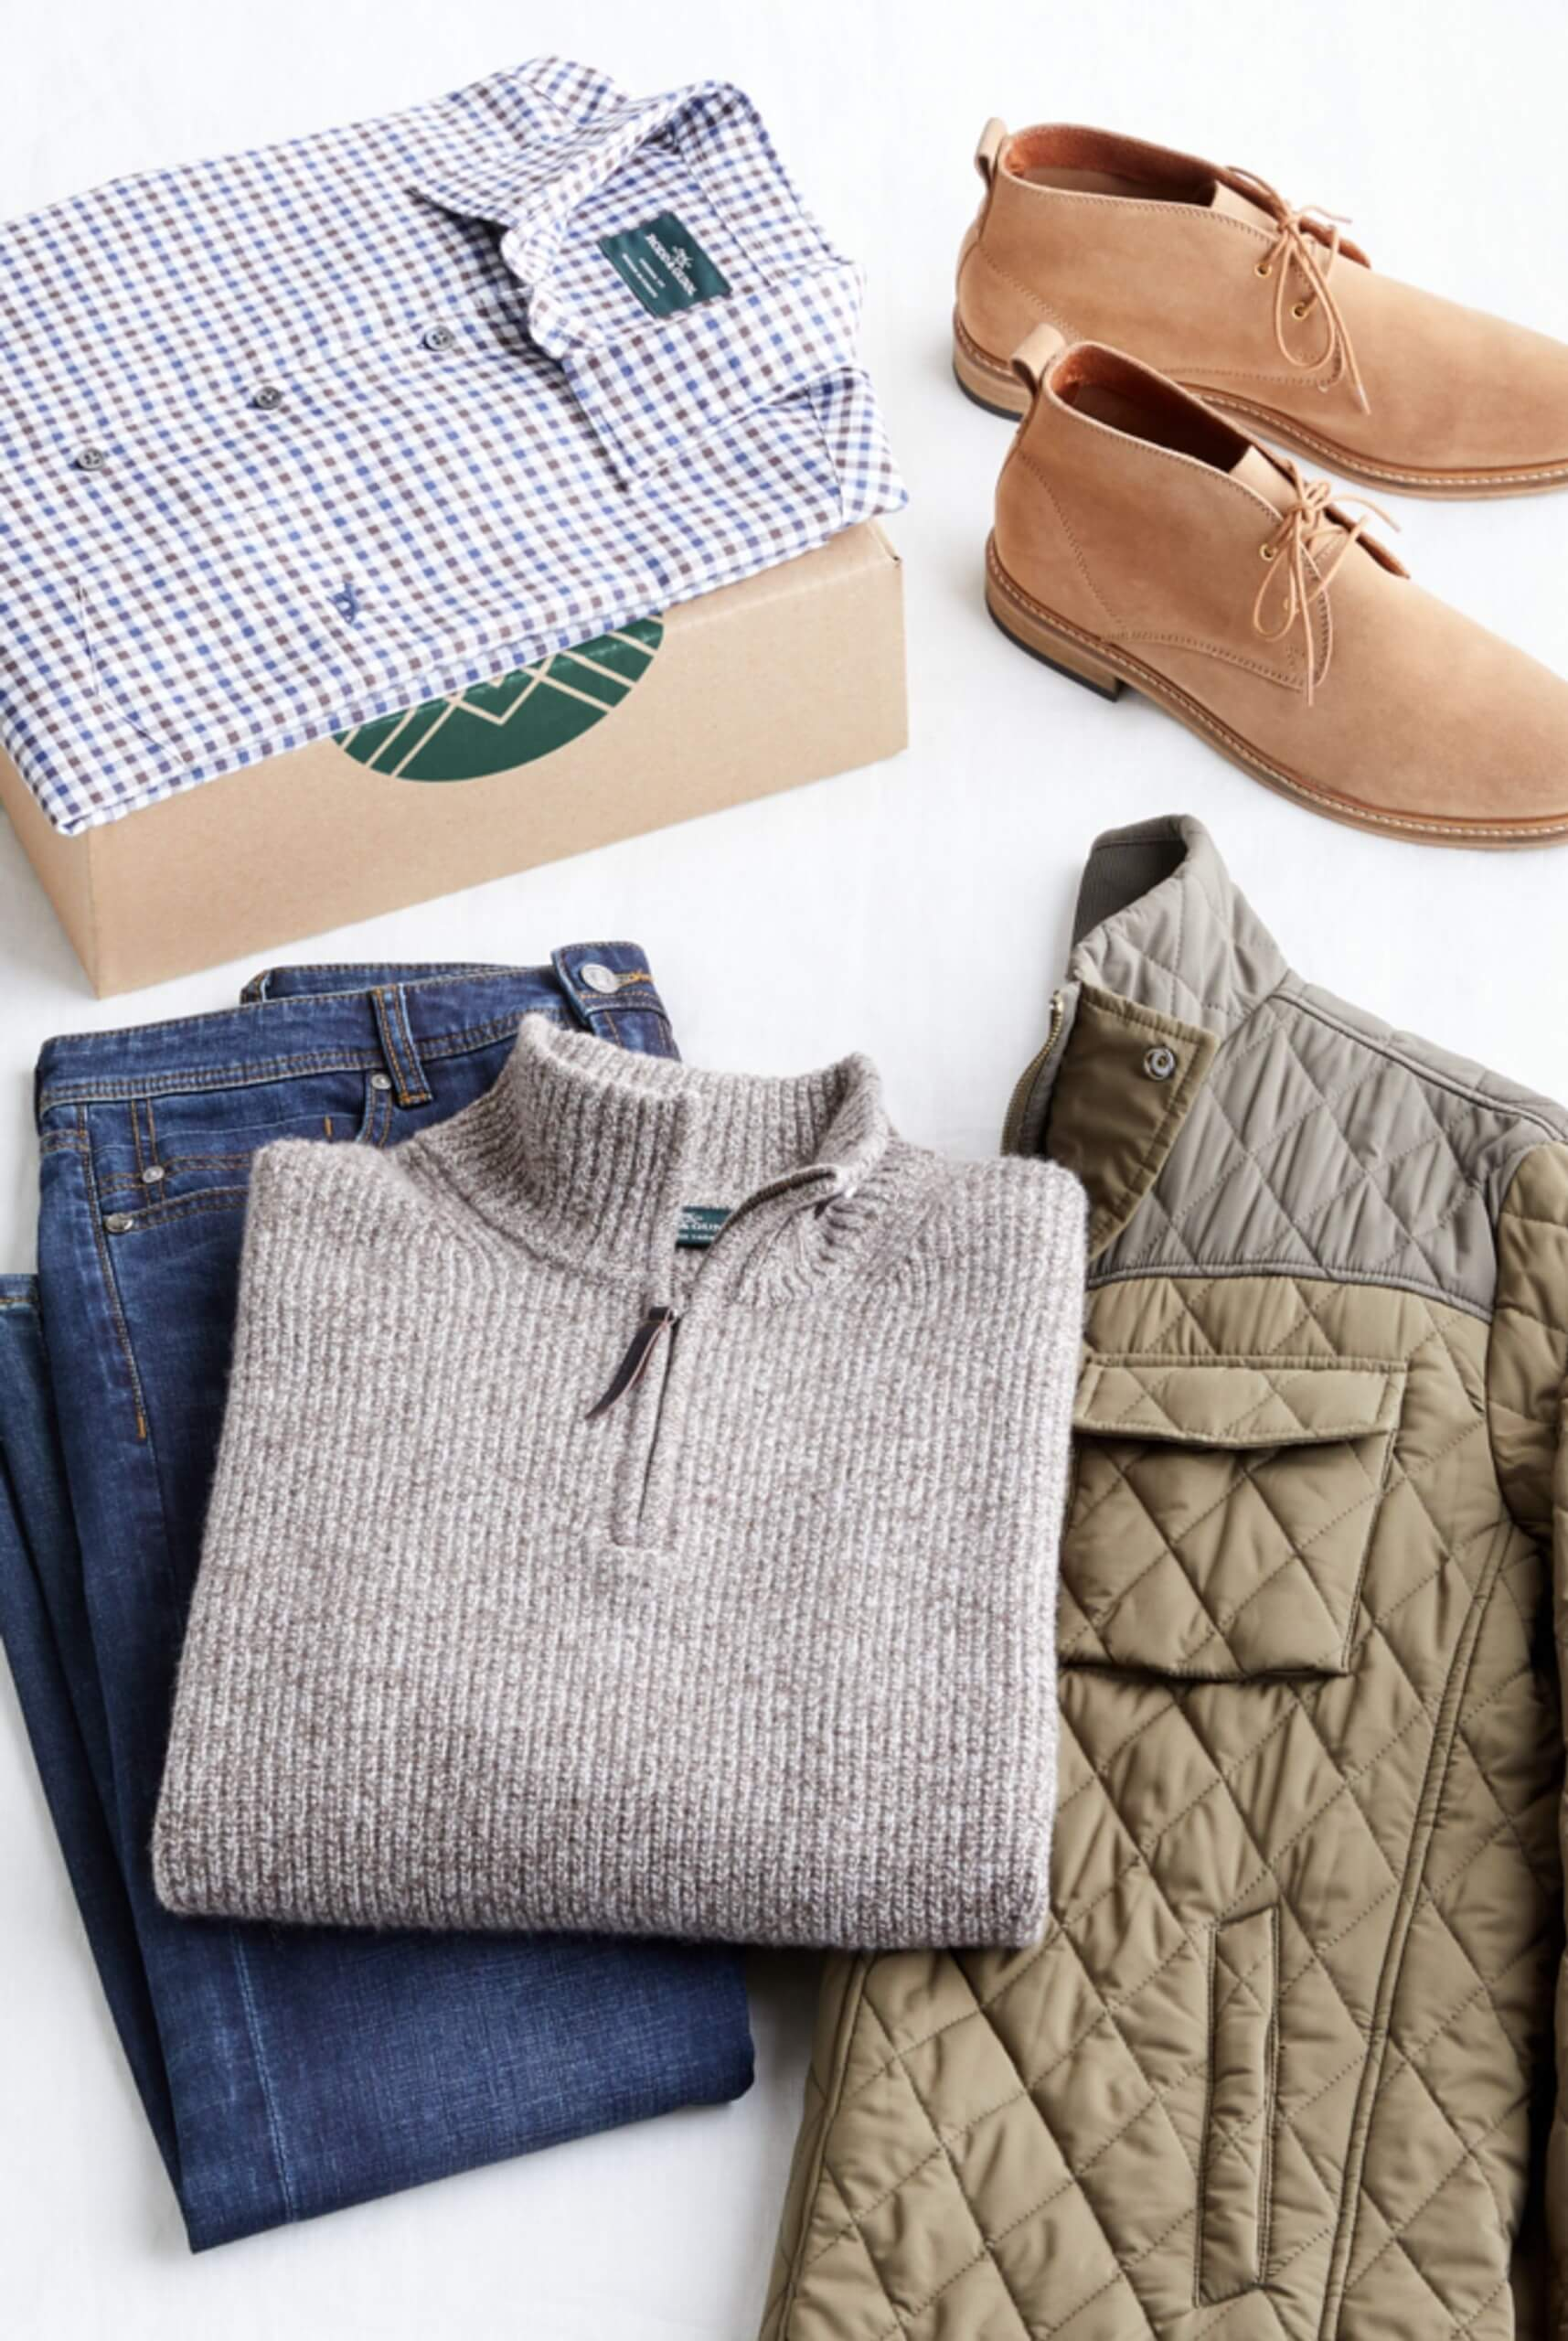 Stitch Fix Men's outfit laydown featuring a quarter-zip sweater over dark wash jeans and quilted jacket, next to tan chukkas and checkered woven shirt sitting on a Stitch Fix delivery box.